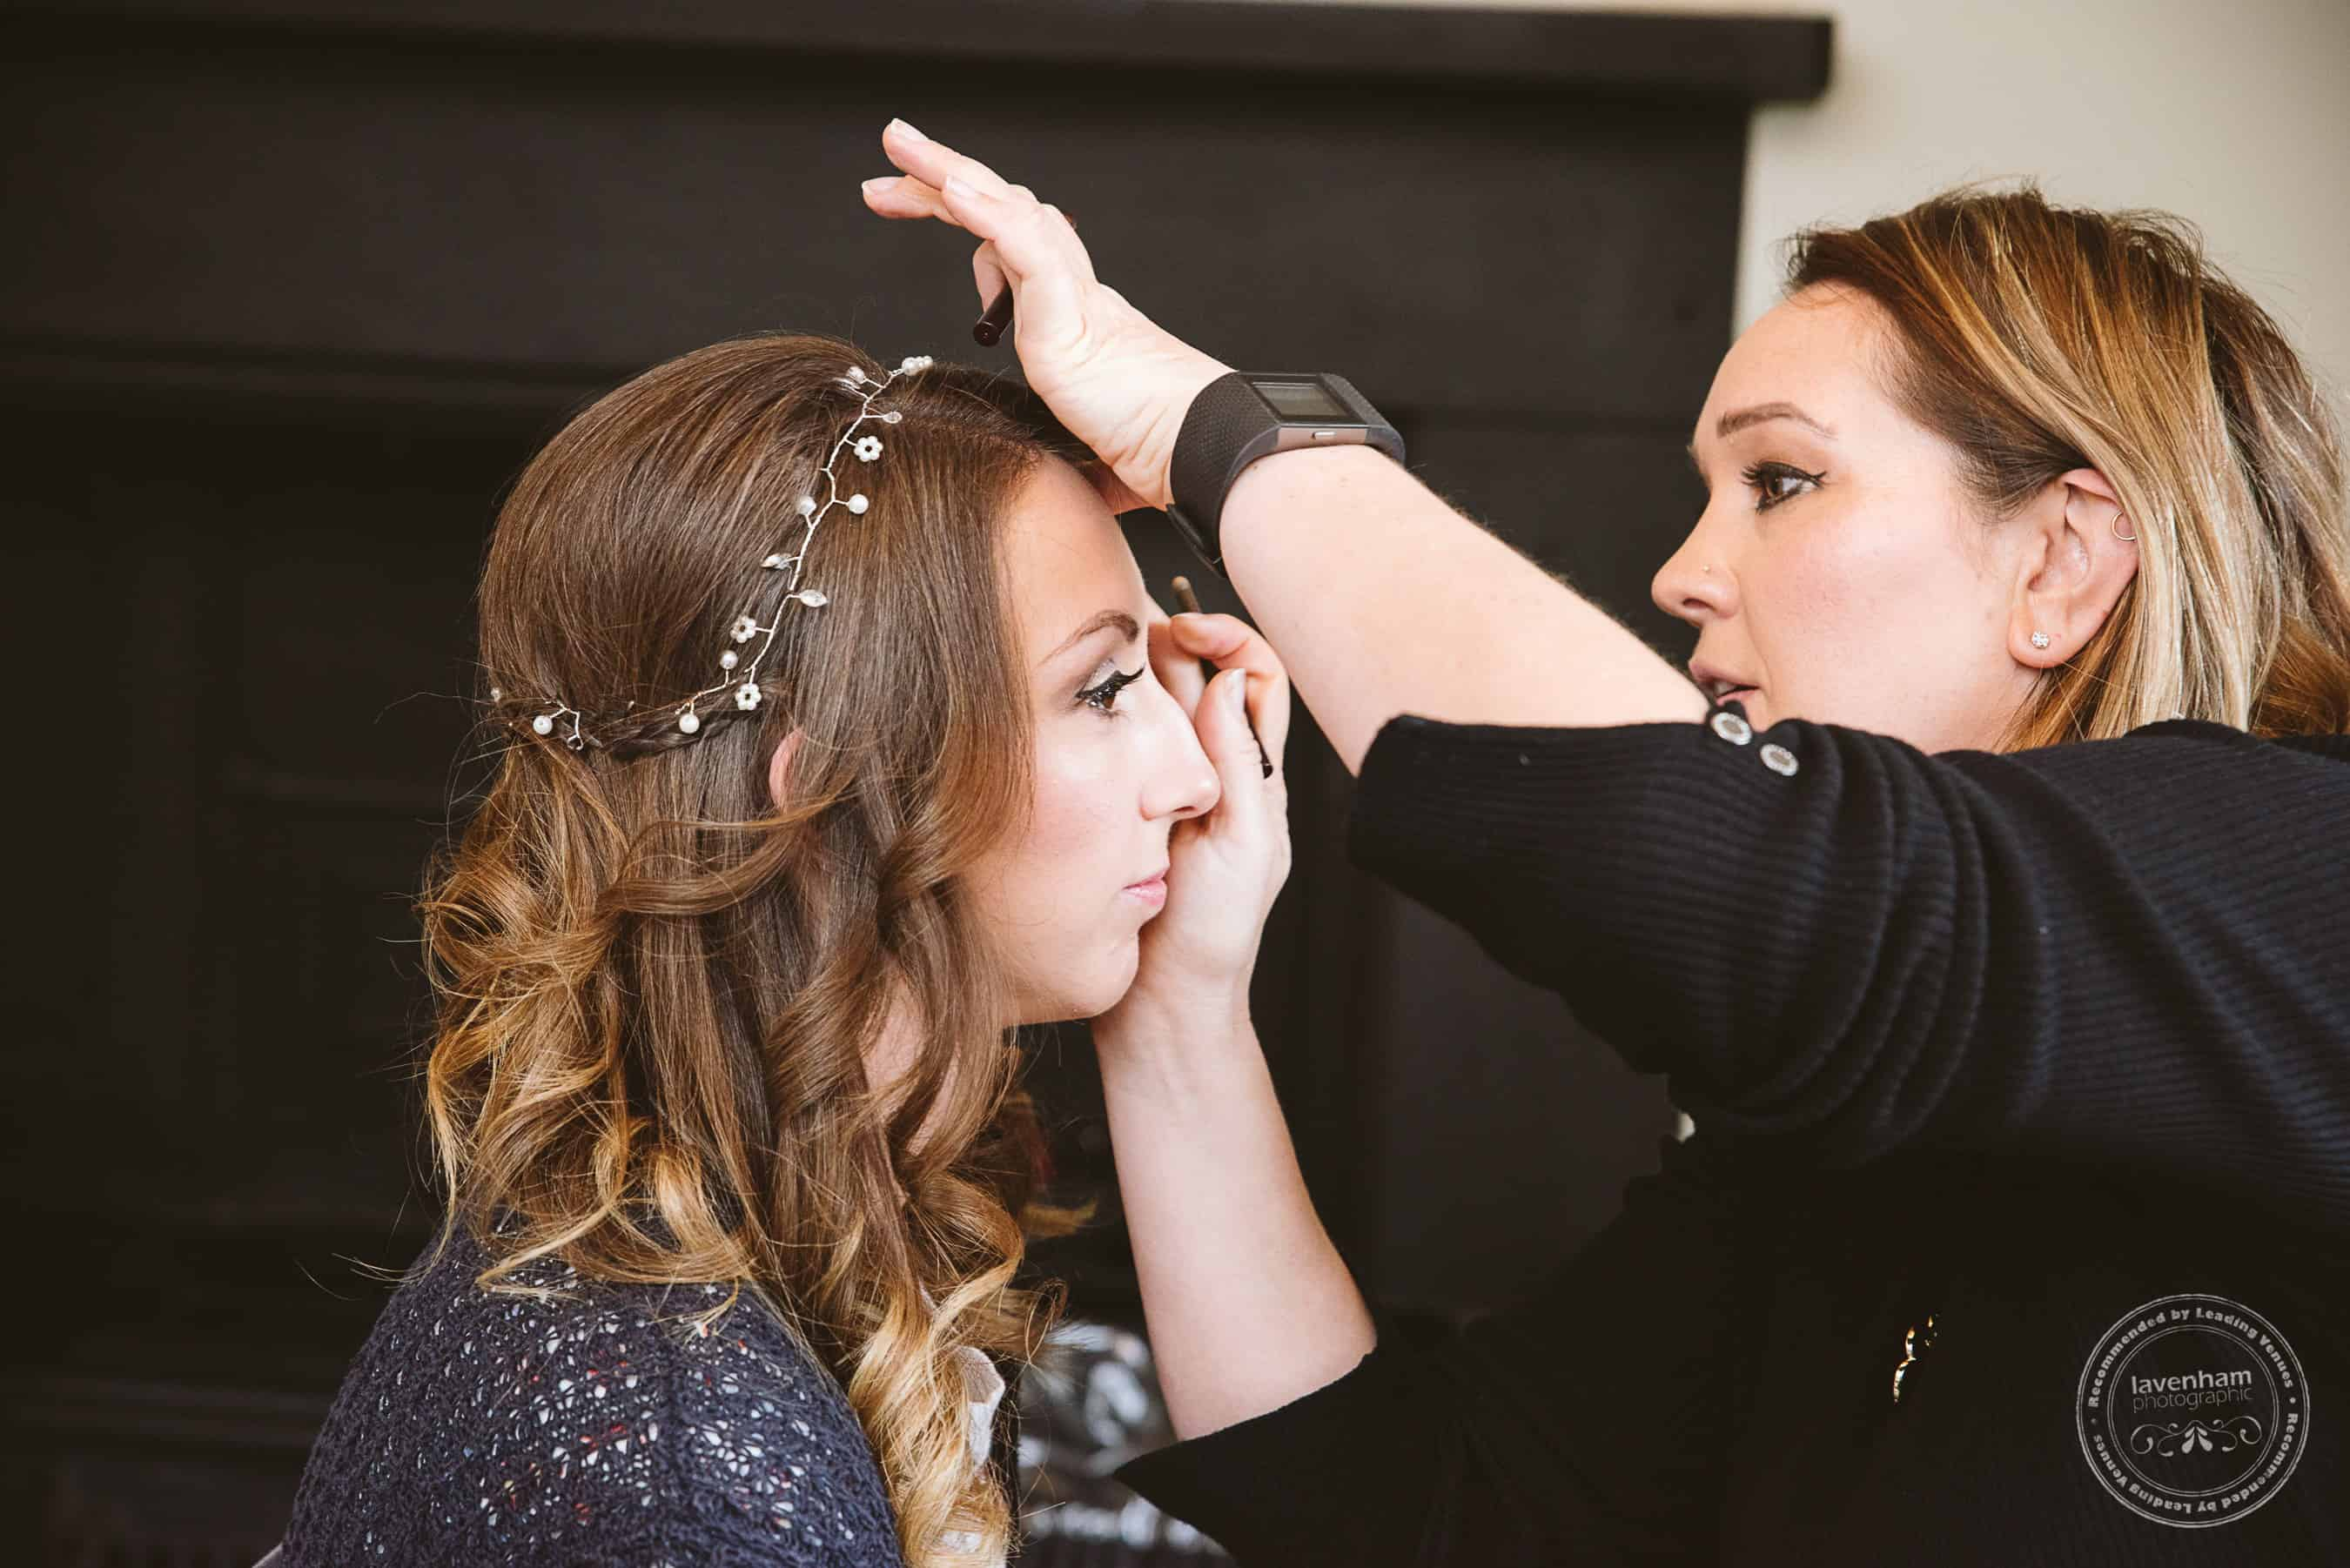 041118 Woodhall Manor Wedding Photography by Lavenham Photographic 026